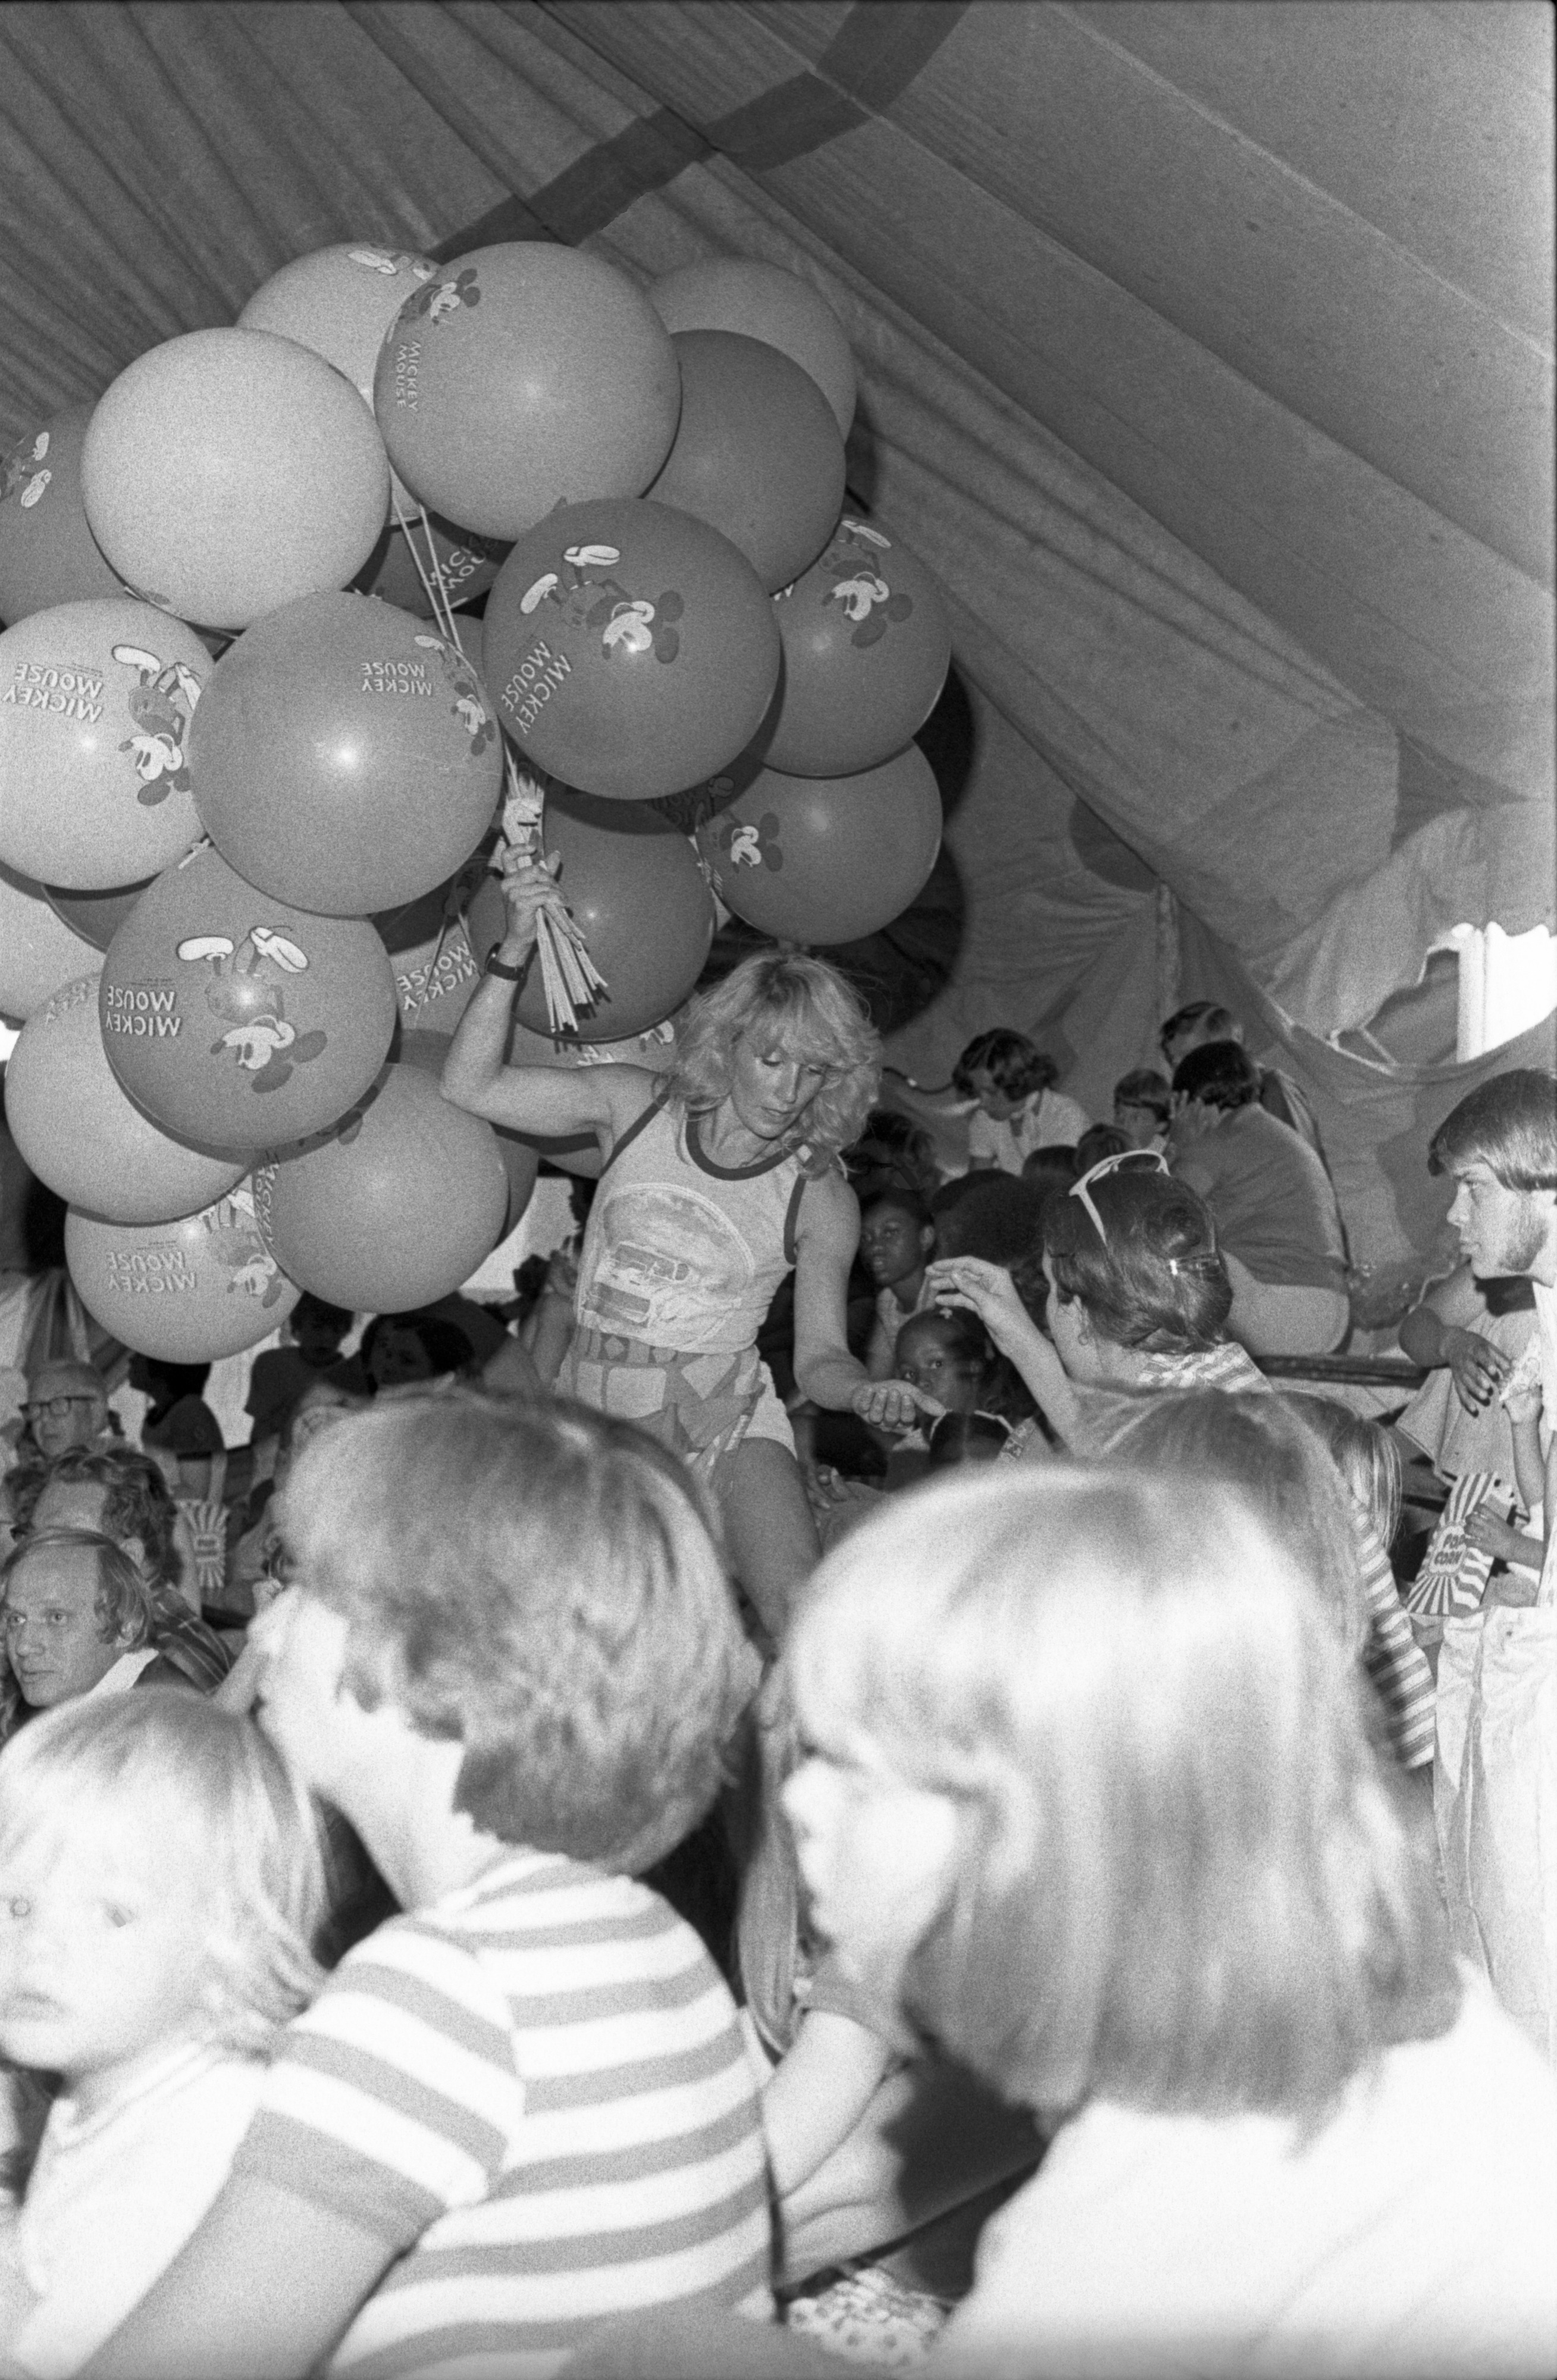 Selling Balloons At The Hagan-Wallace-Sells-Gray Circus, July 27, 1977 image